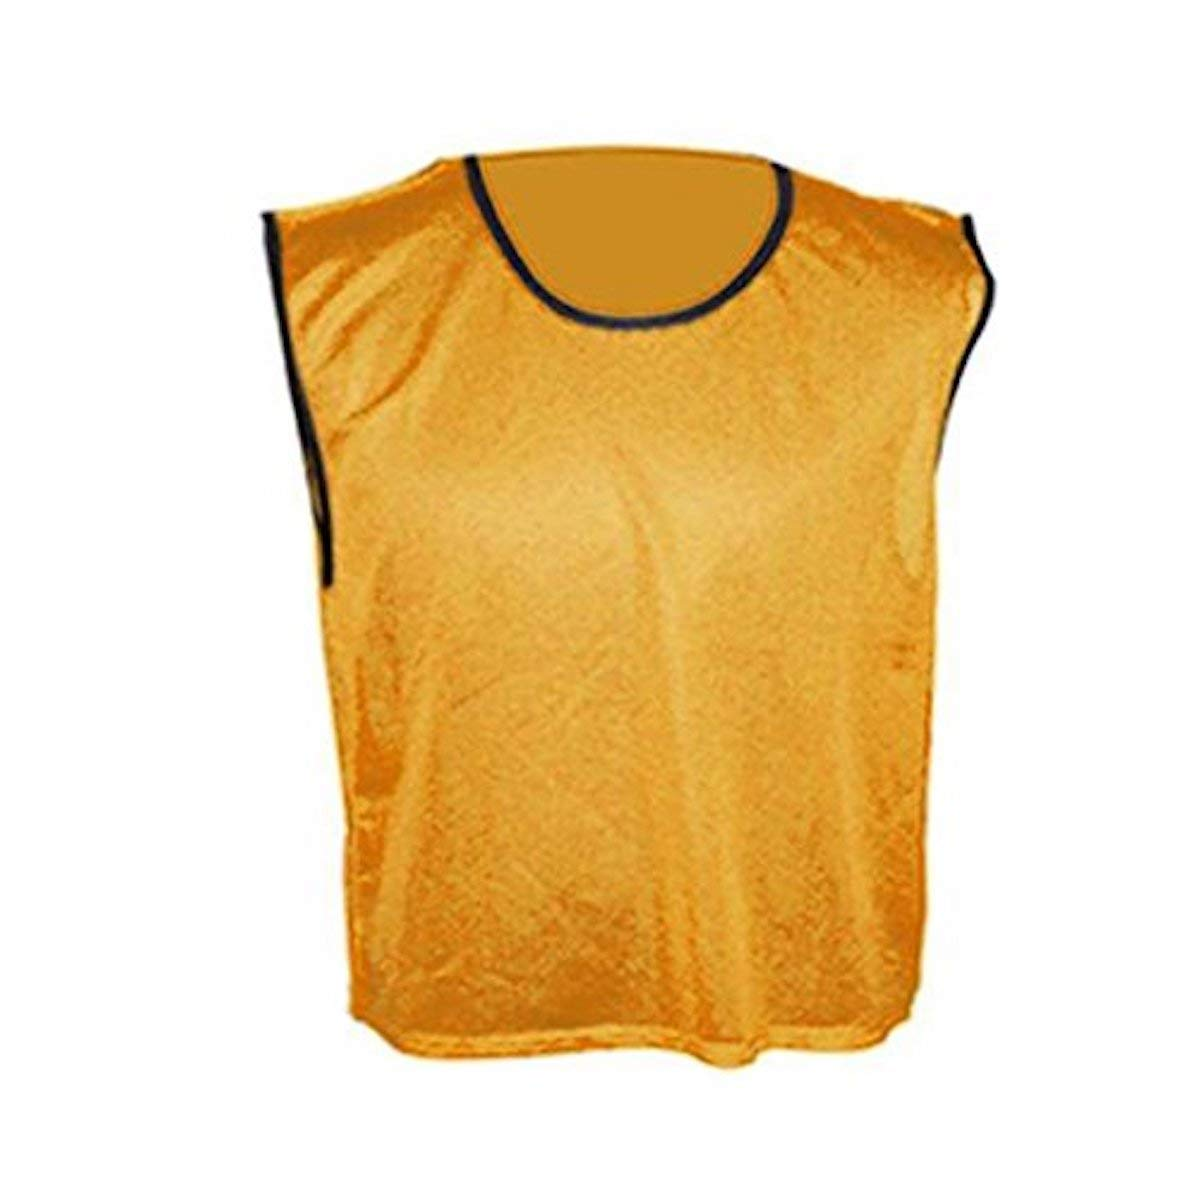 Basketball Football Volleyball UCC Mesh Training Sports Bib//Jercsey//Vest for Soccer Pack of 5 Rugby etc,